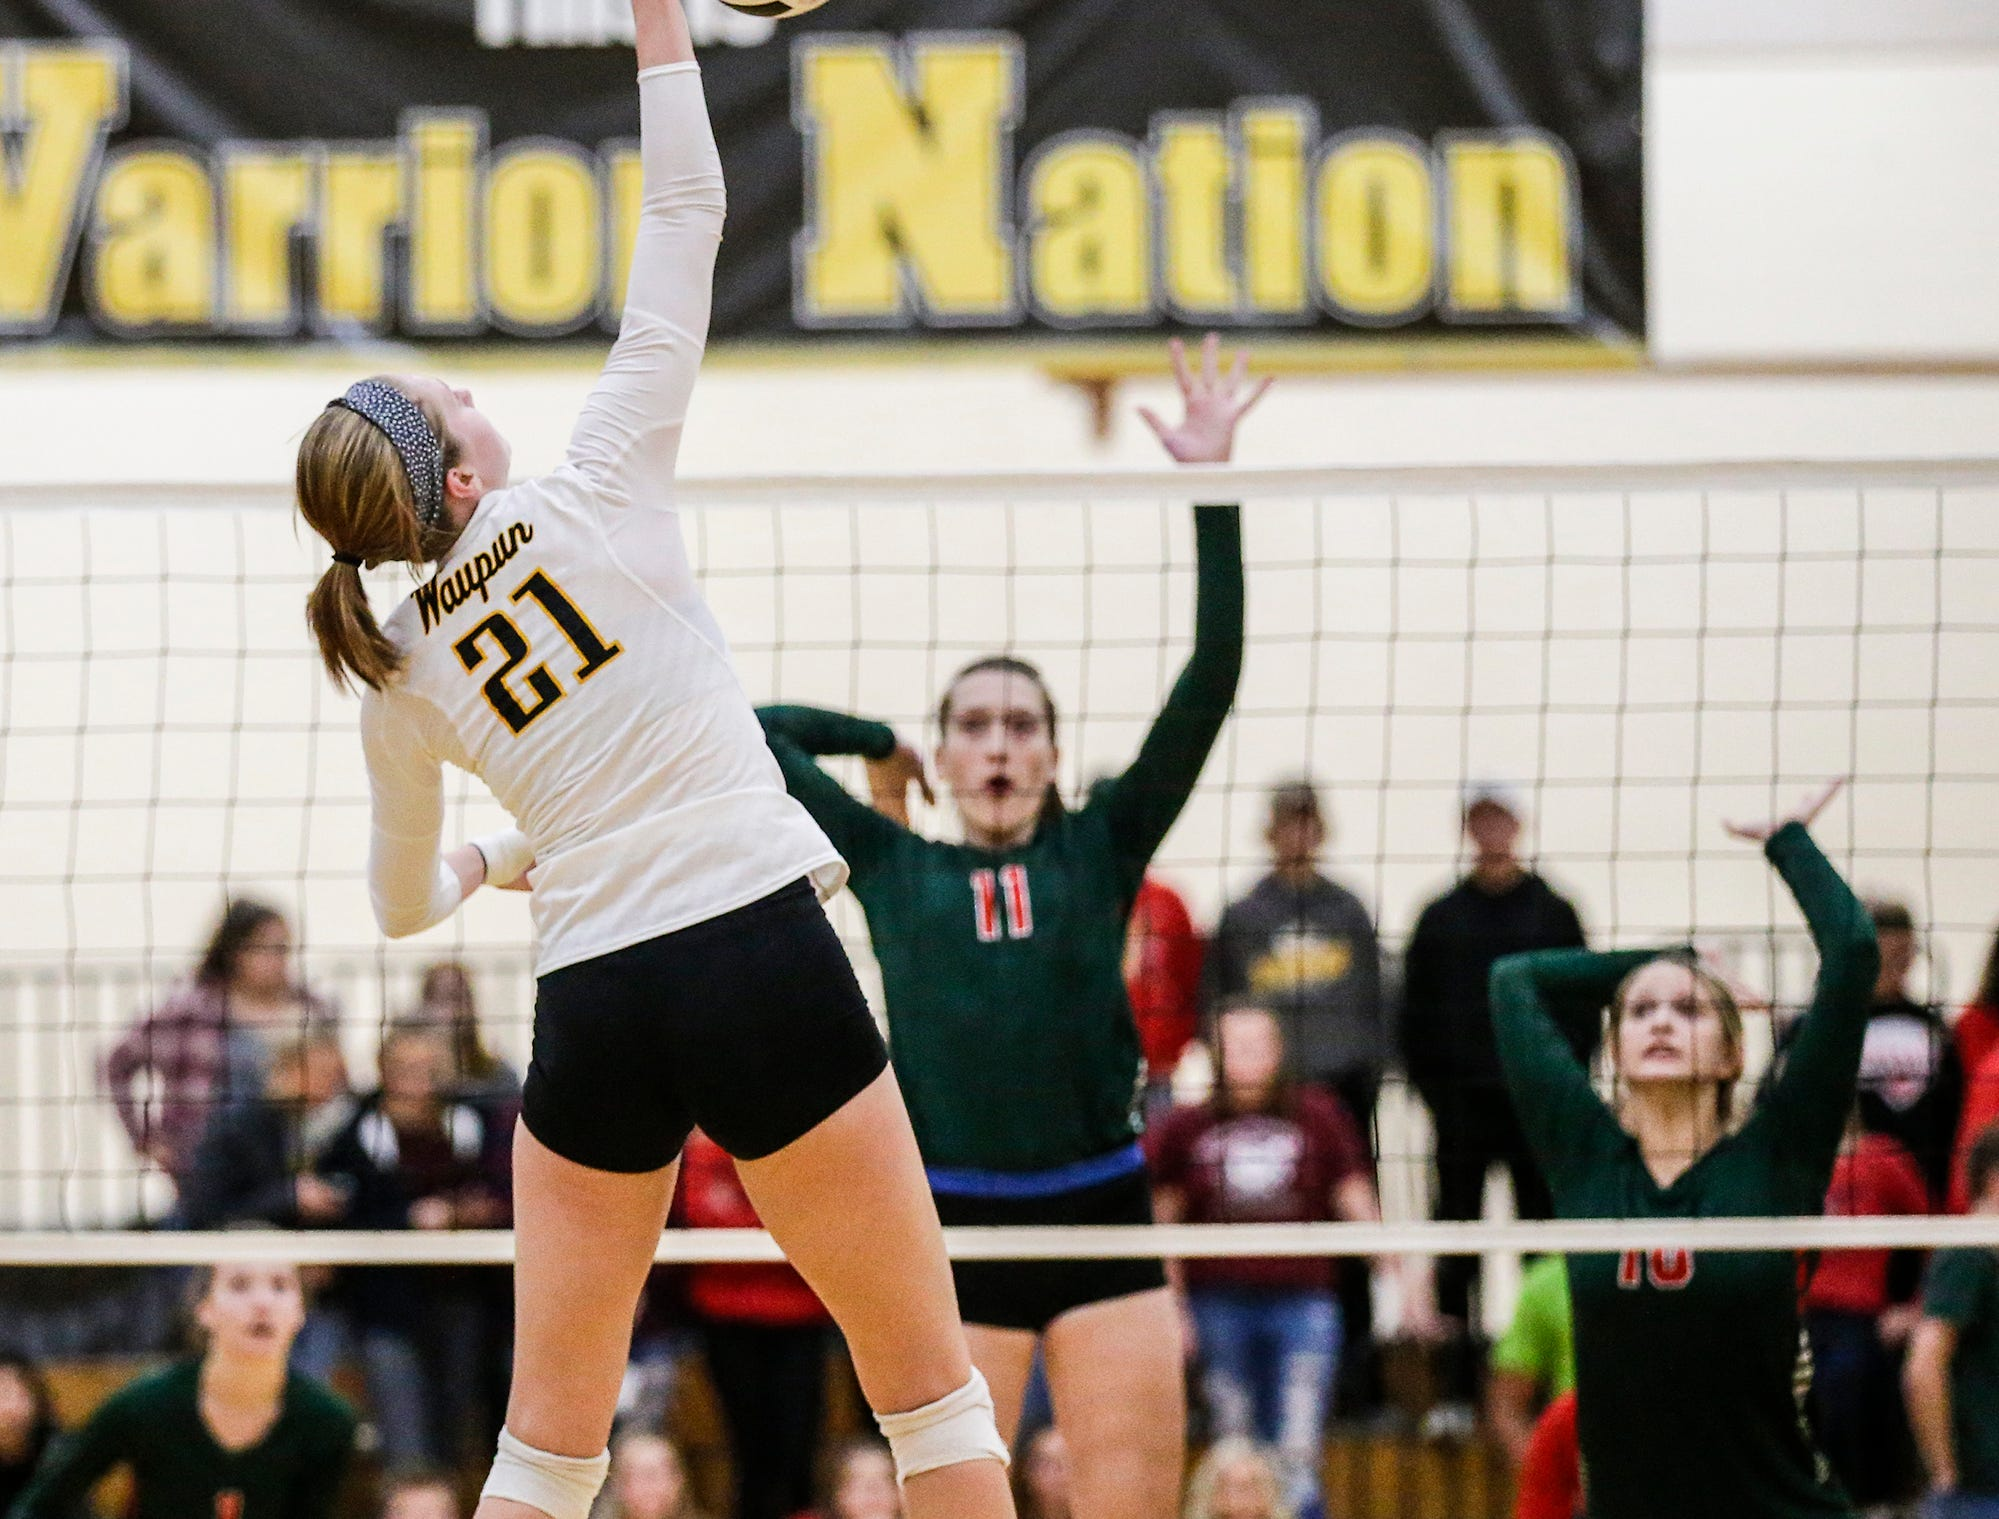 Waupun High School volleyball's Claire Bresser hits the ball against Berlin High School during their WIAA regional quarter-final playoff game Tuesday, Oct. 16, 2018 in Waupun.